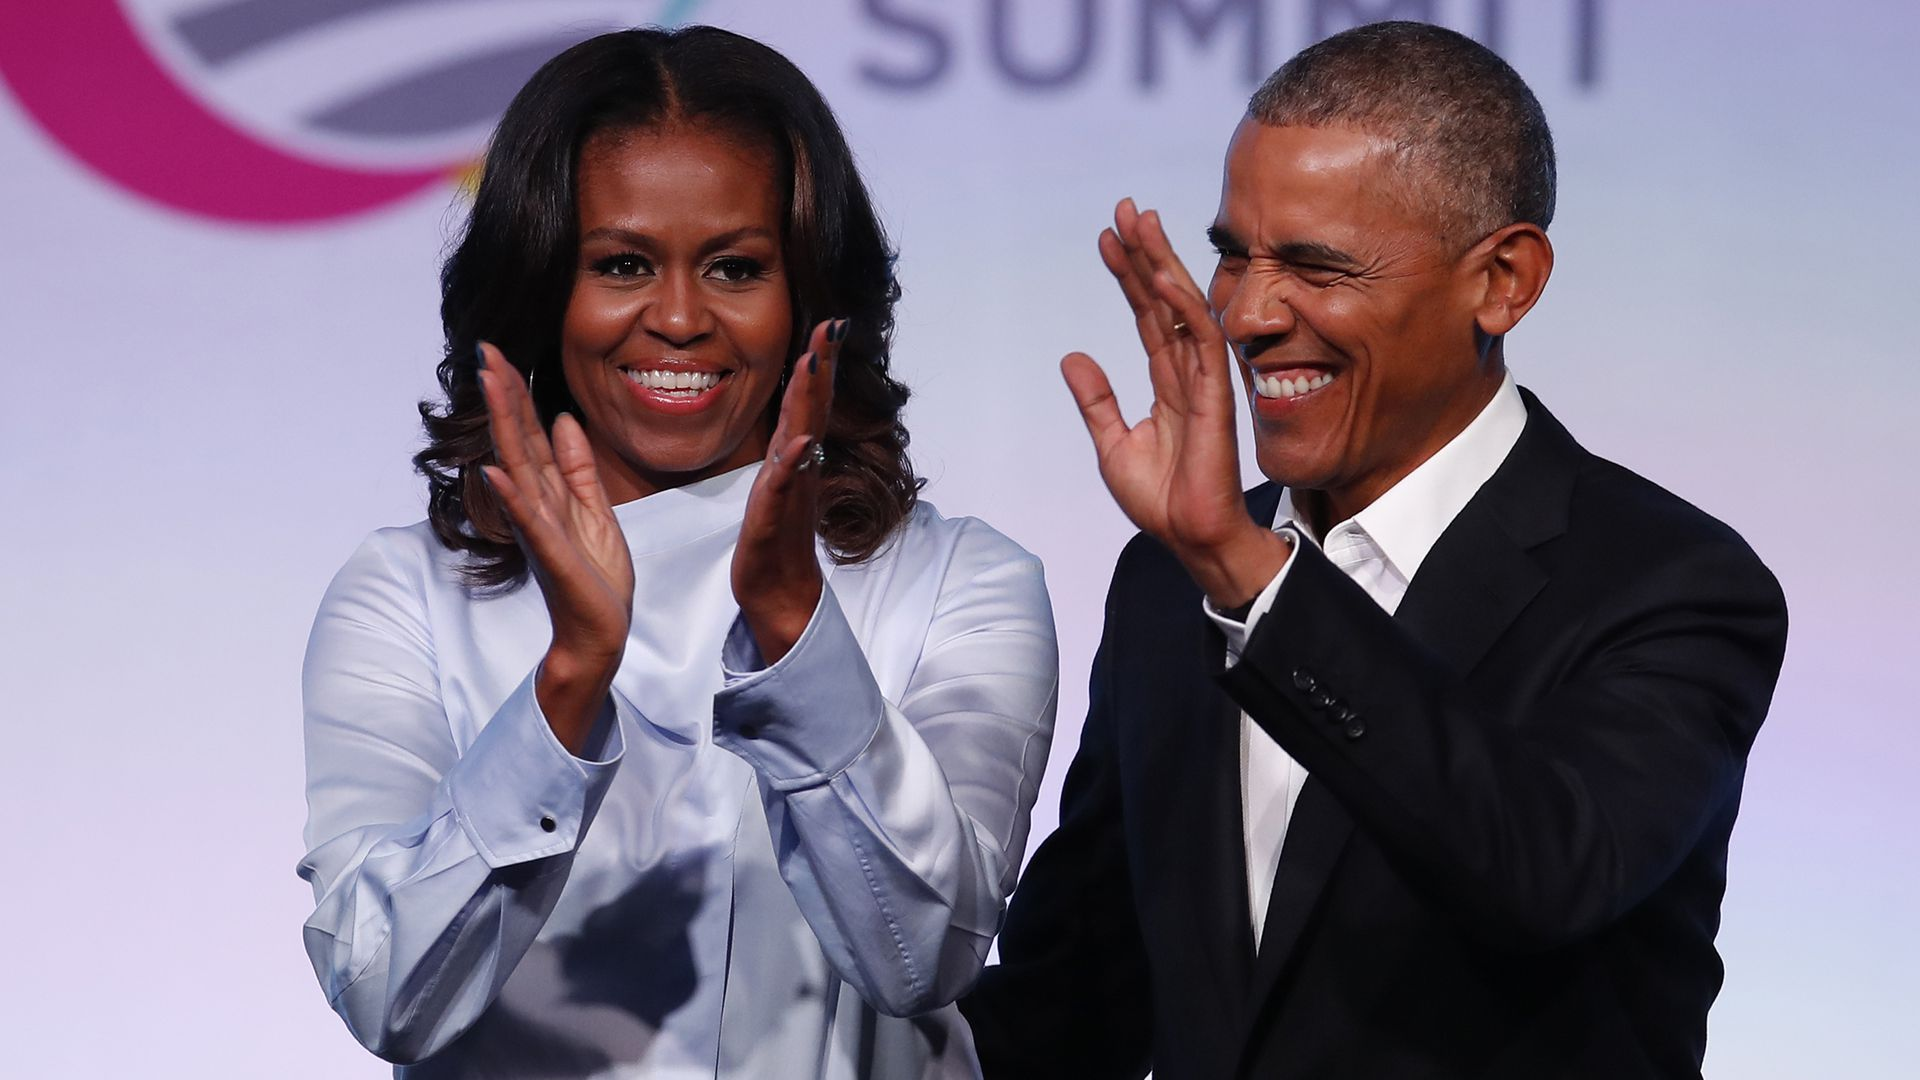 Barack and Michelle Obama sign podcast production deal with